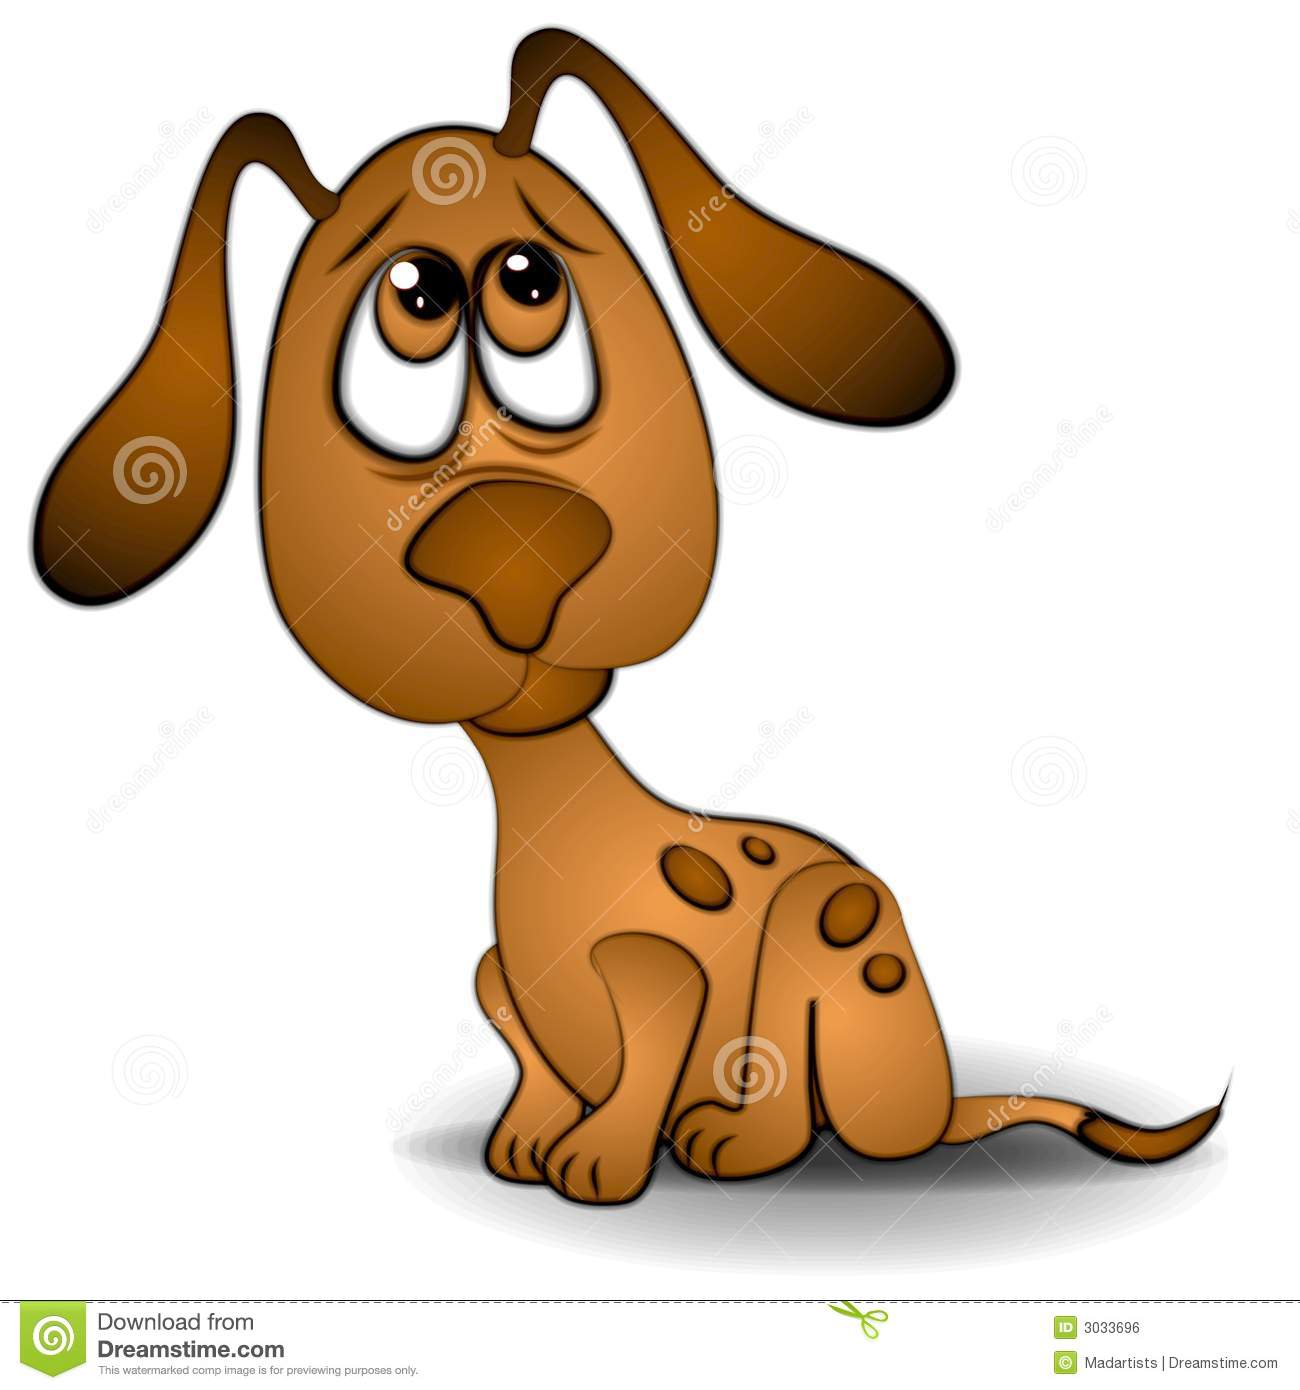 Clip Art Illustration Of A Very Sad Or Scared Looking Dog Or Puppy